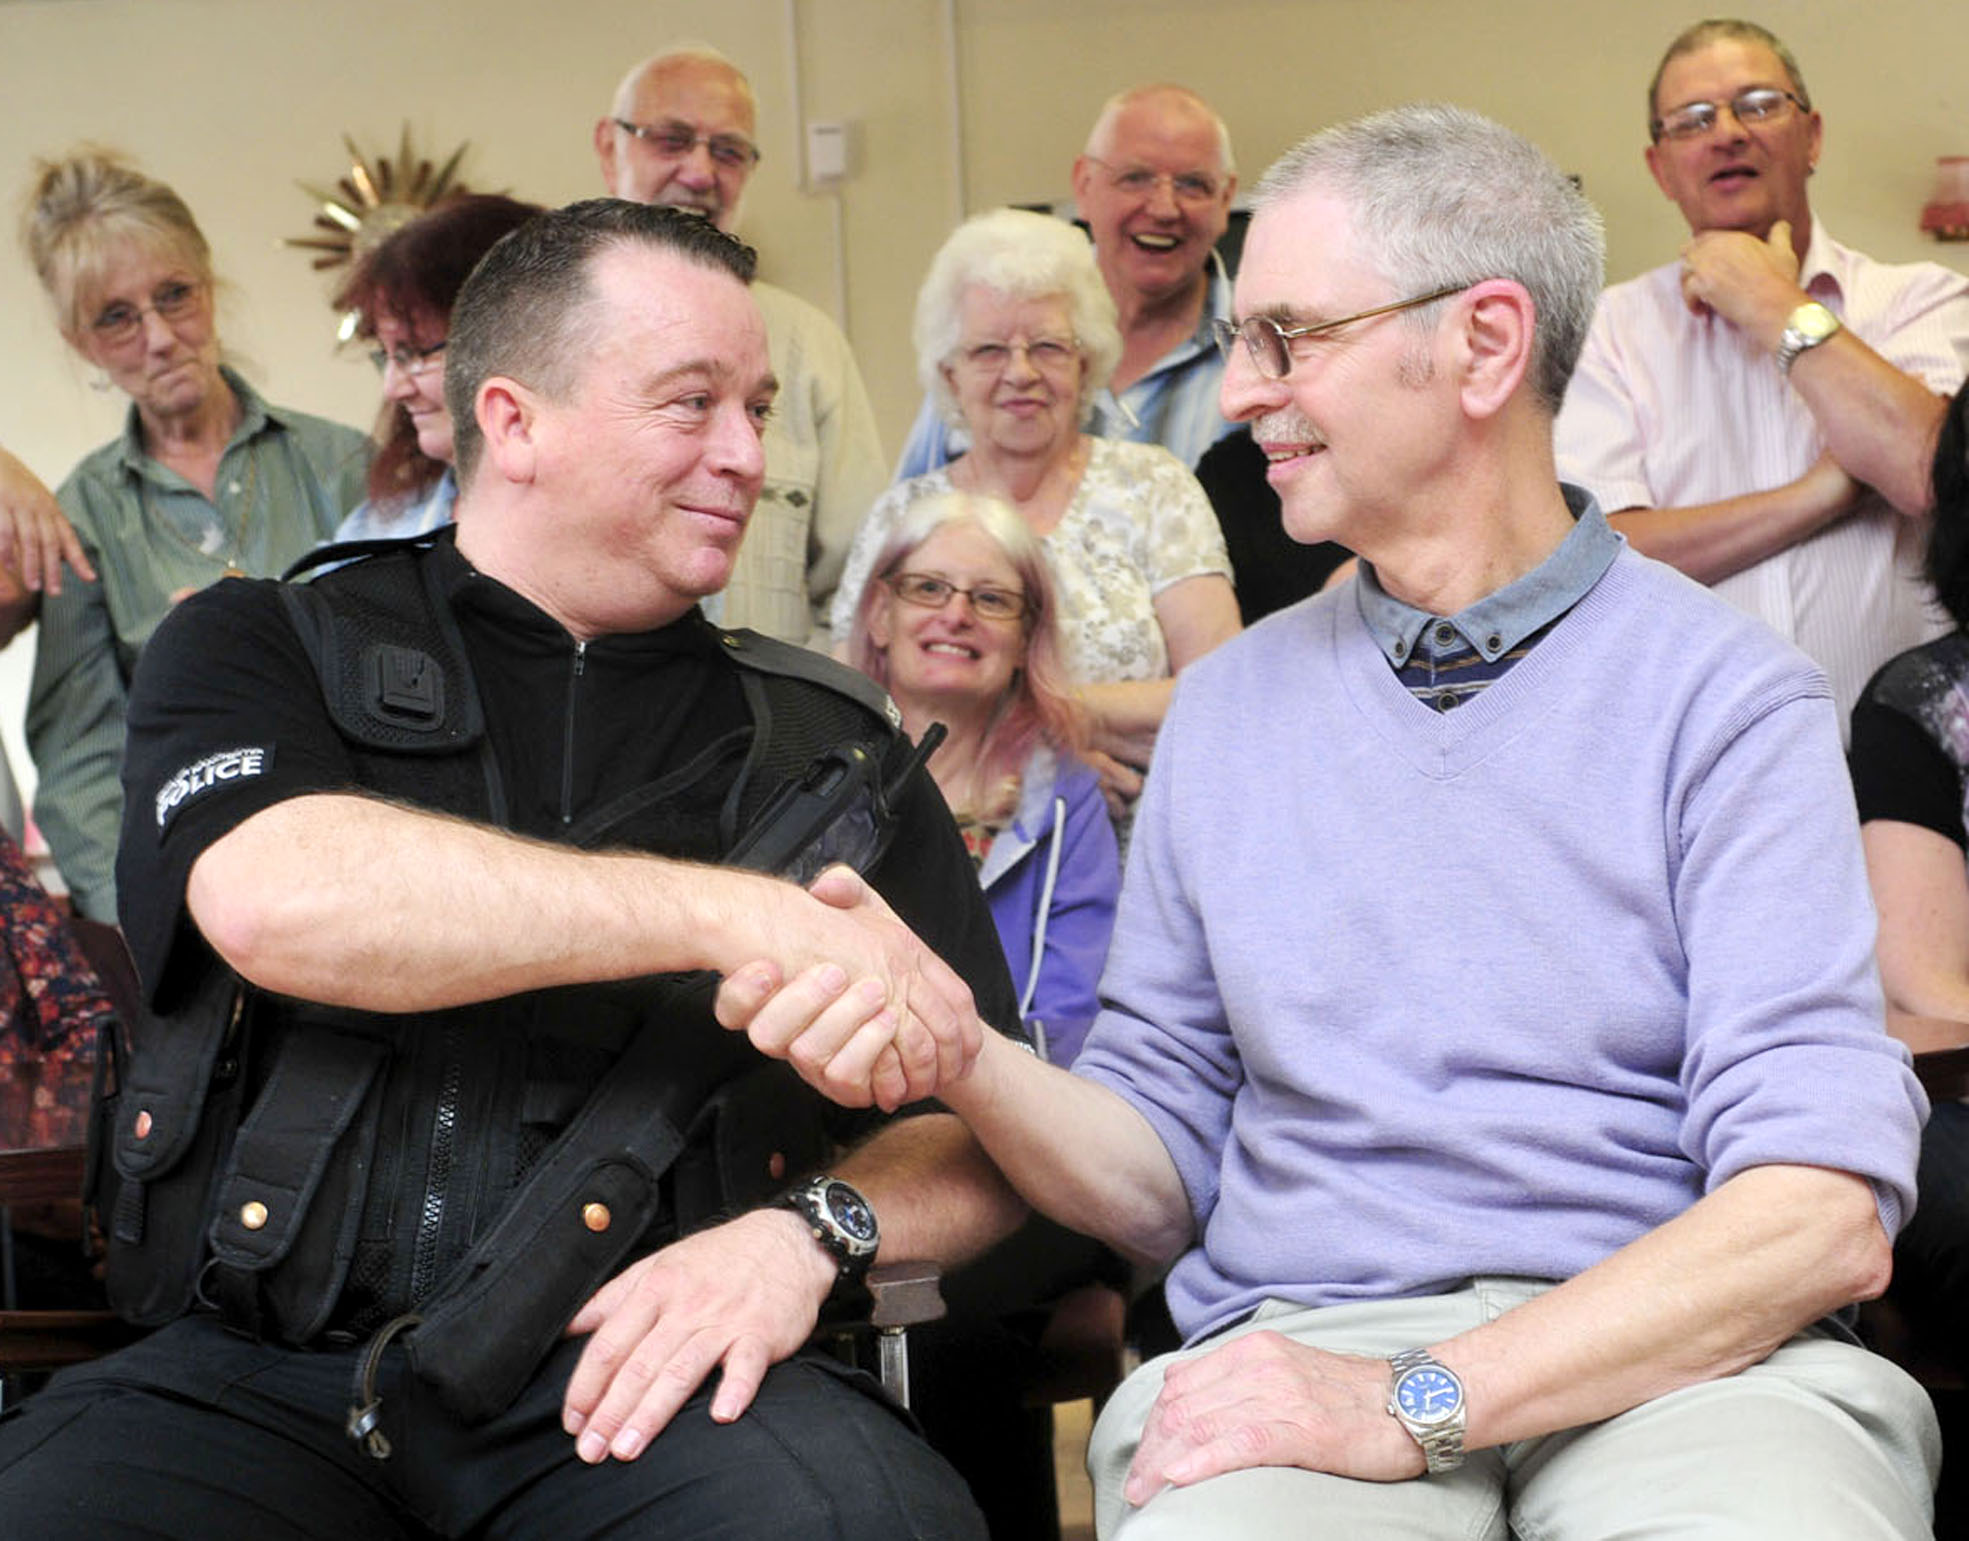 PC Bryan Newbold meets members of Bolton deaf community